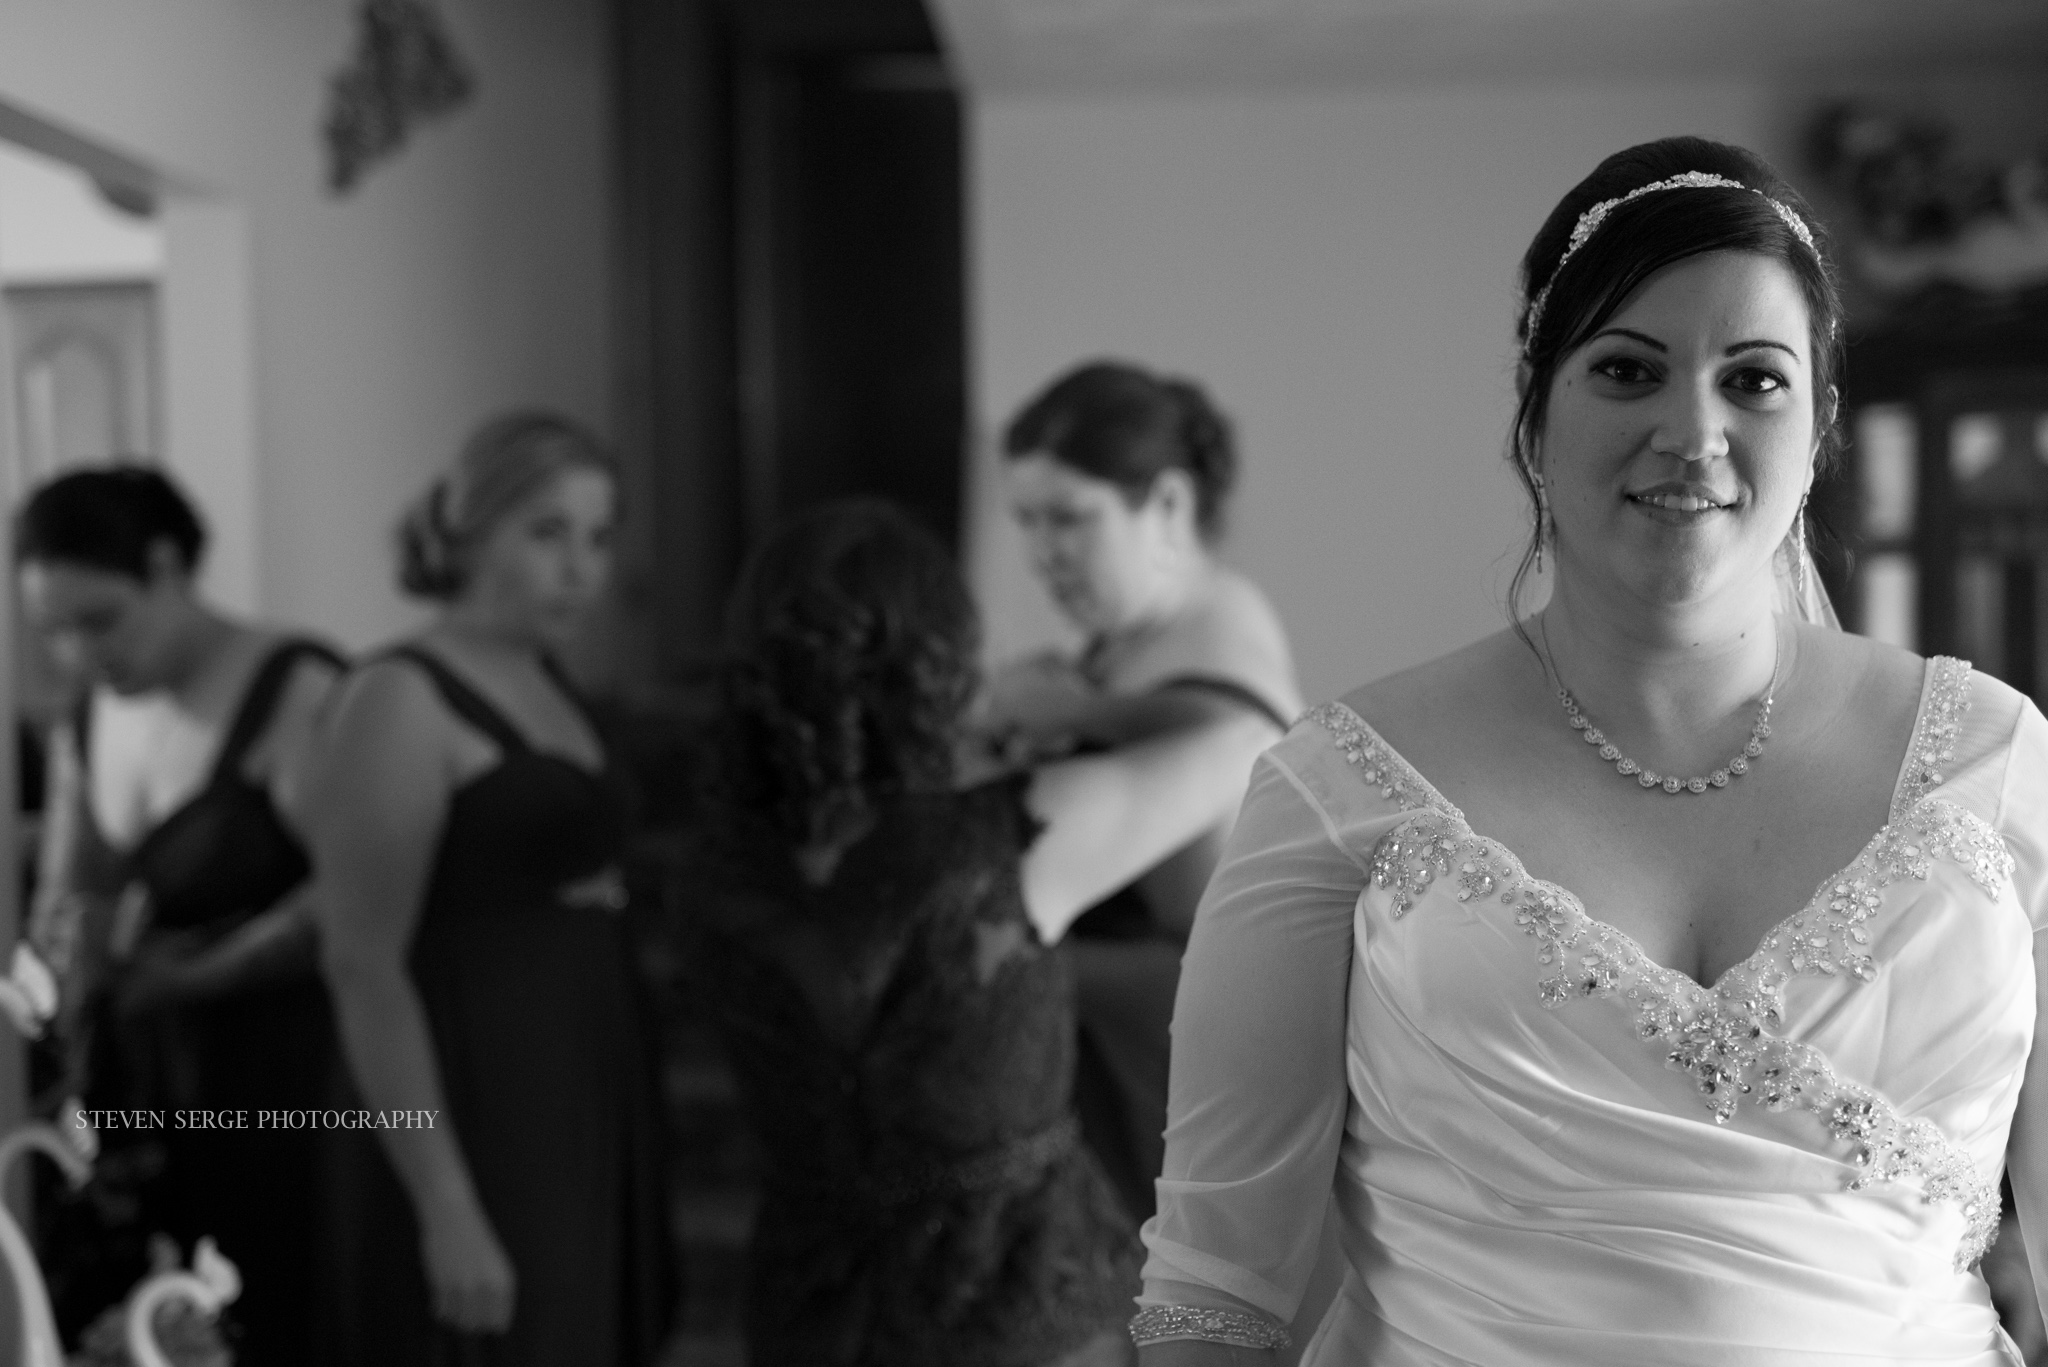 Scranton-wedding-photographer-fiorellis-steven-serge-8.jpg